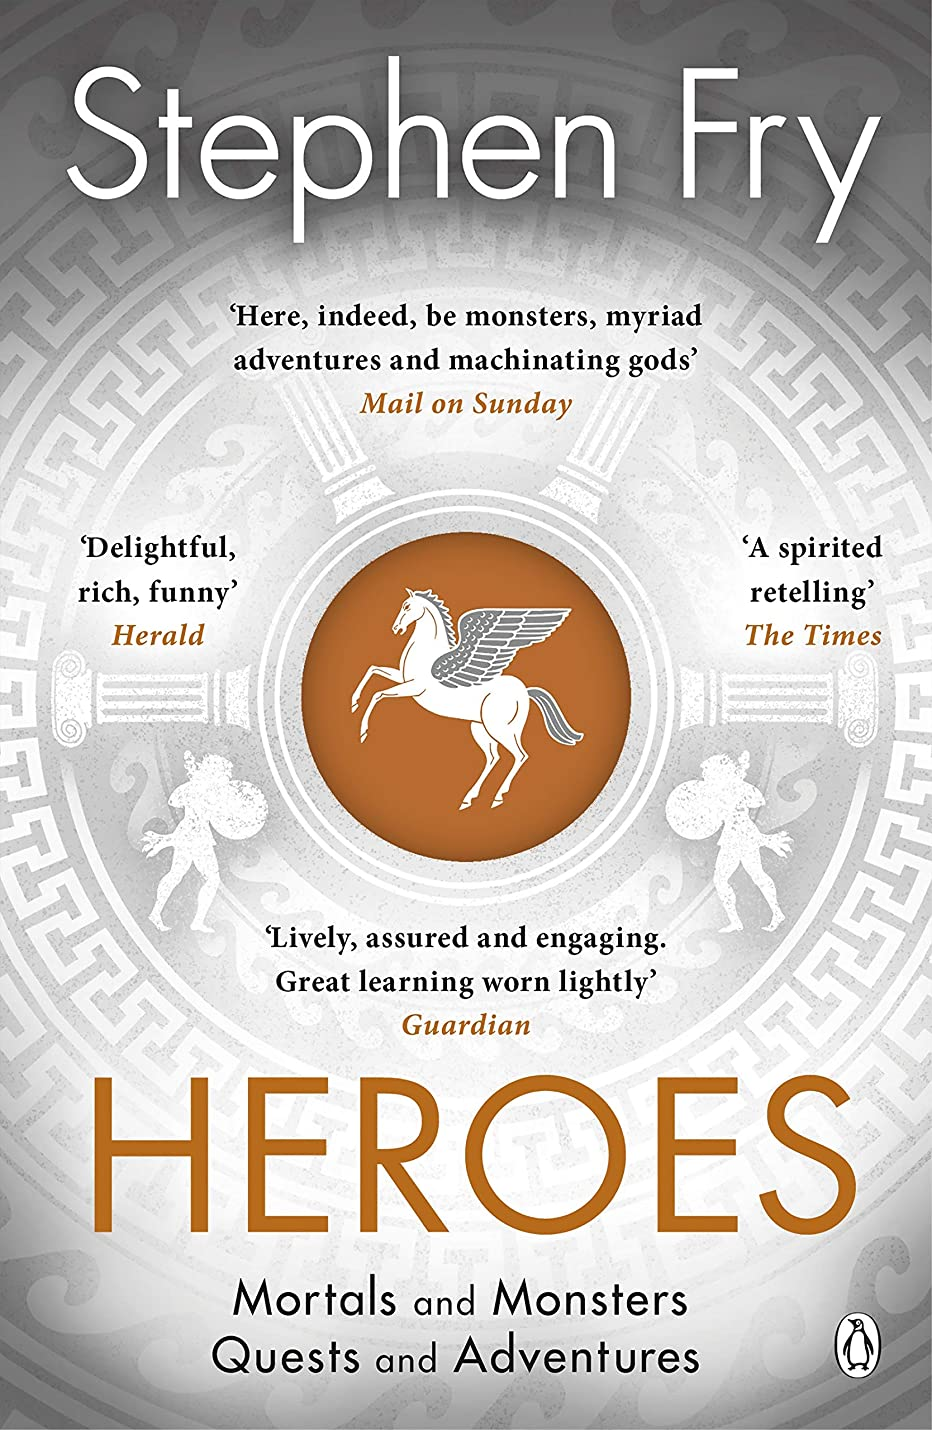 内側イブニングモンクHeroes: The myths of the Ancient Greek heroes retold (Stephen Fry's Greek Myths Book 2) (English Edition)